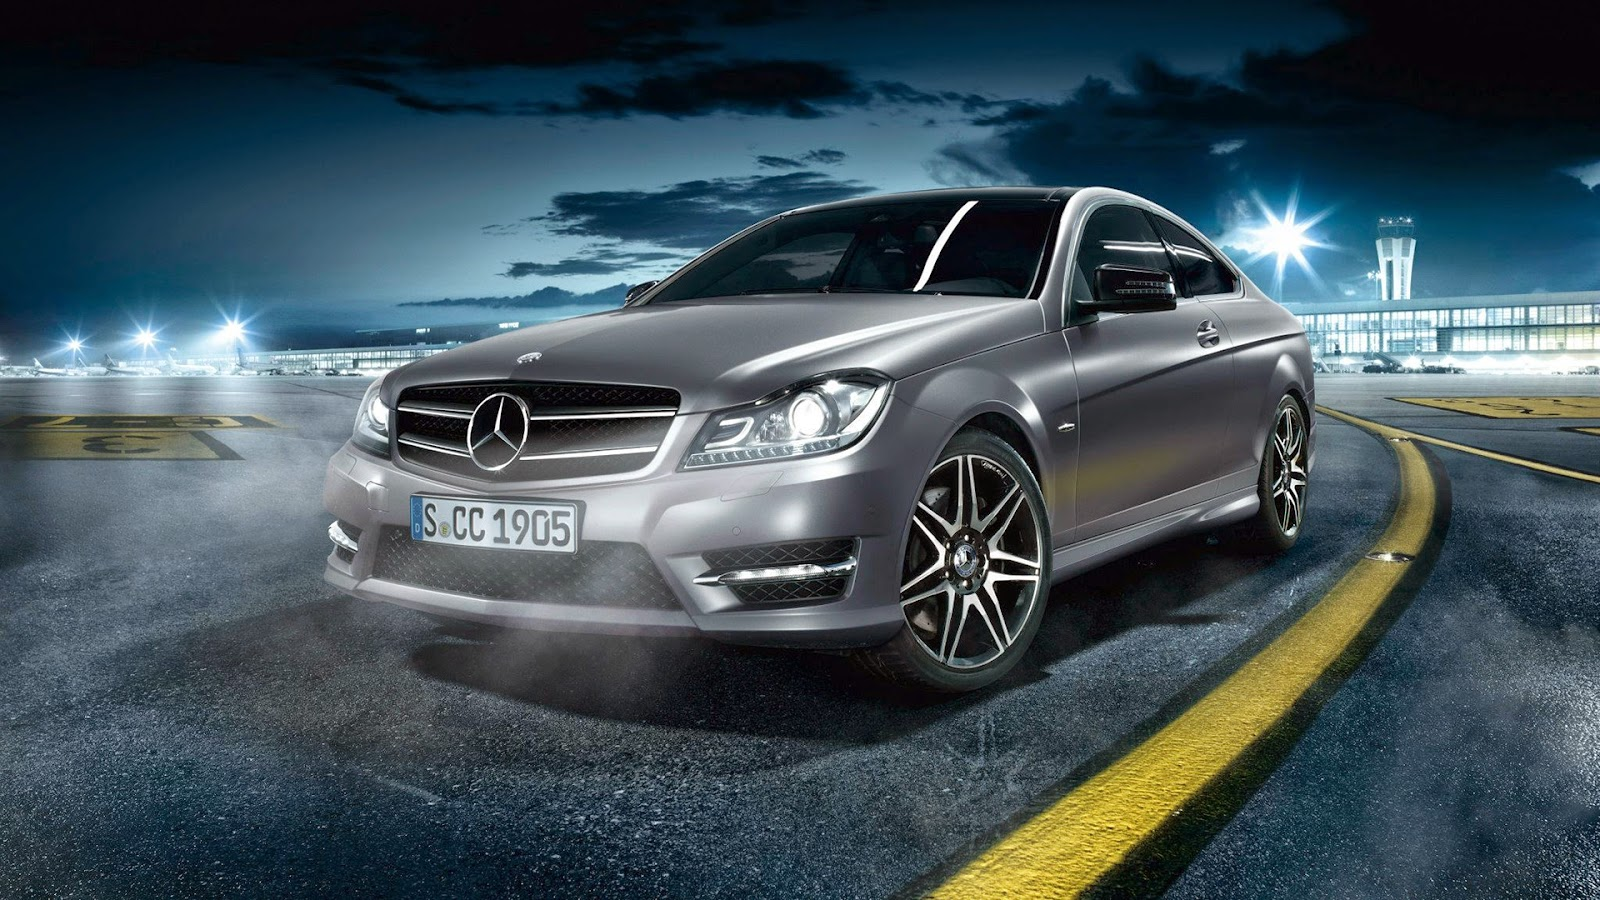 Mercedes-Benz car high resolution pictures